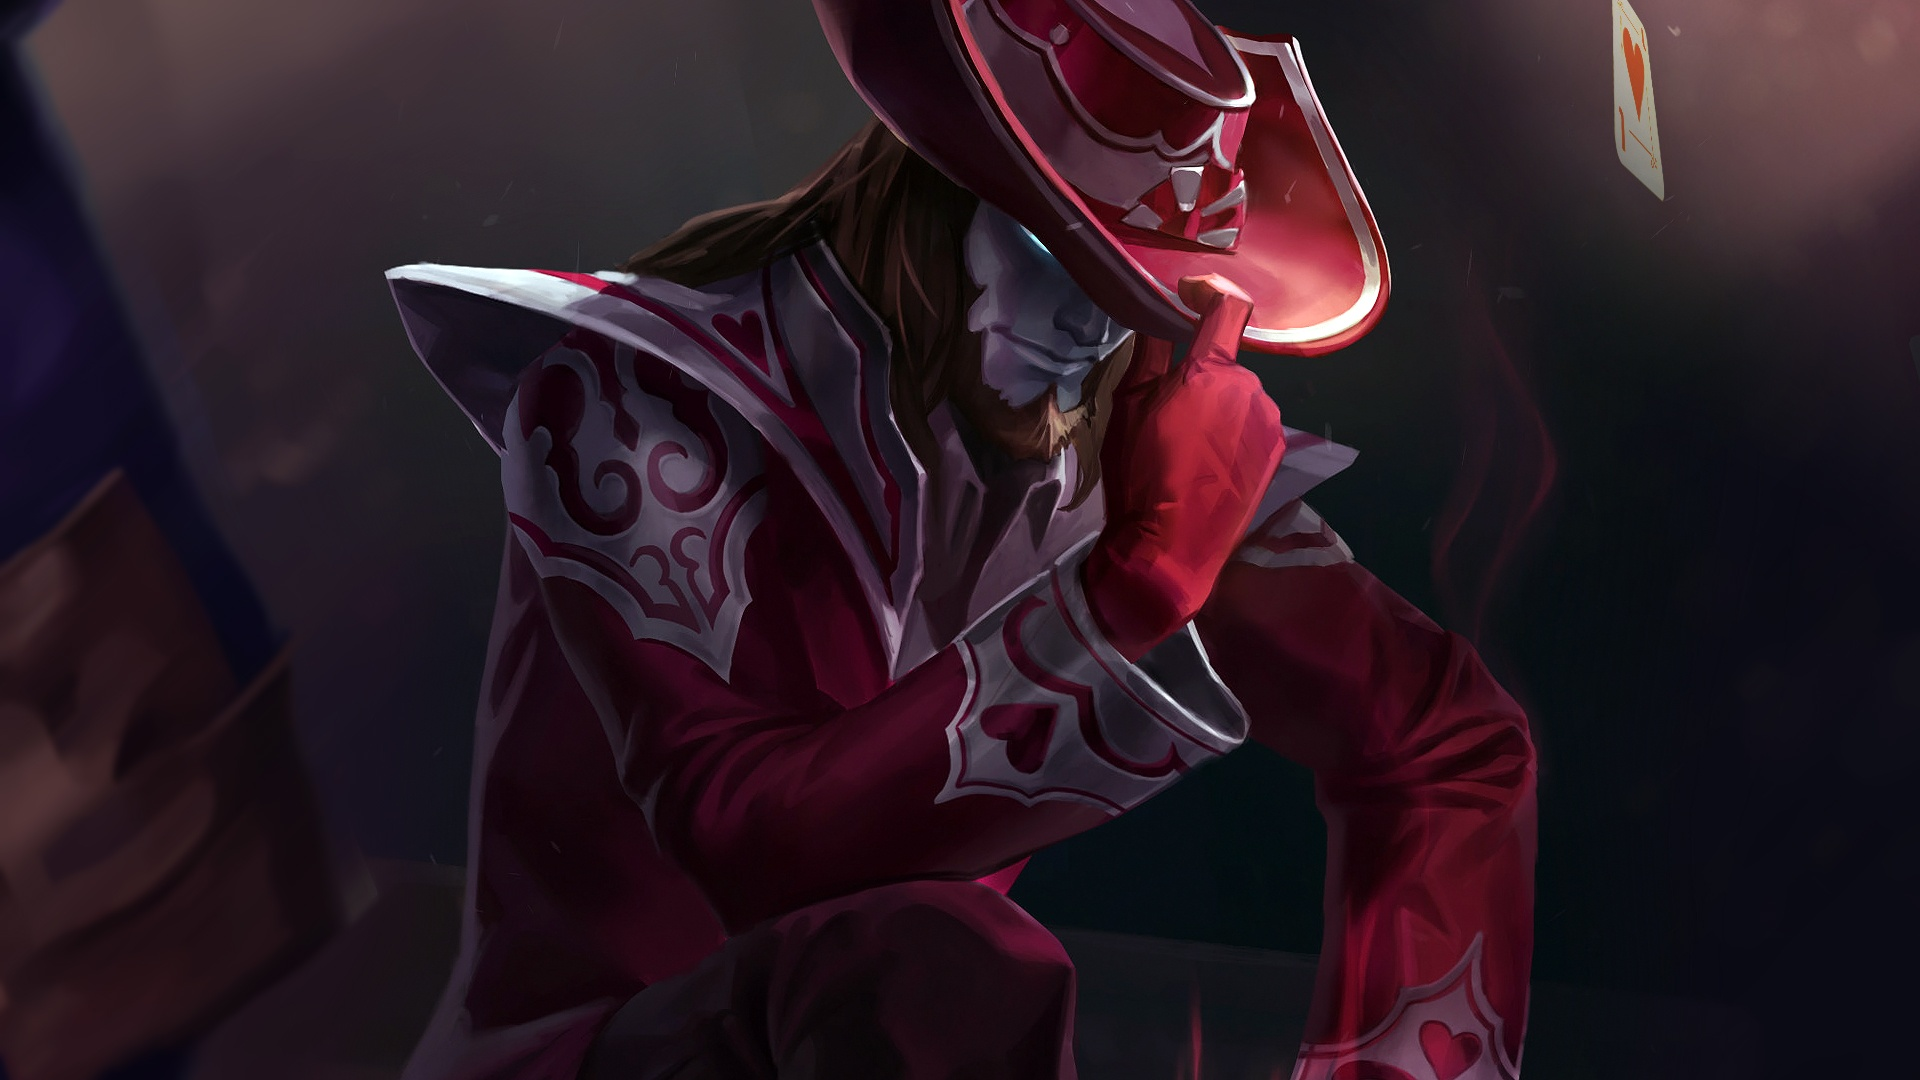 jack-of-hearts-twisted-fate-playing-card-skin-hd-1920x1080-%C3%97-wallpaper-wpc9006692